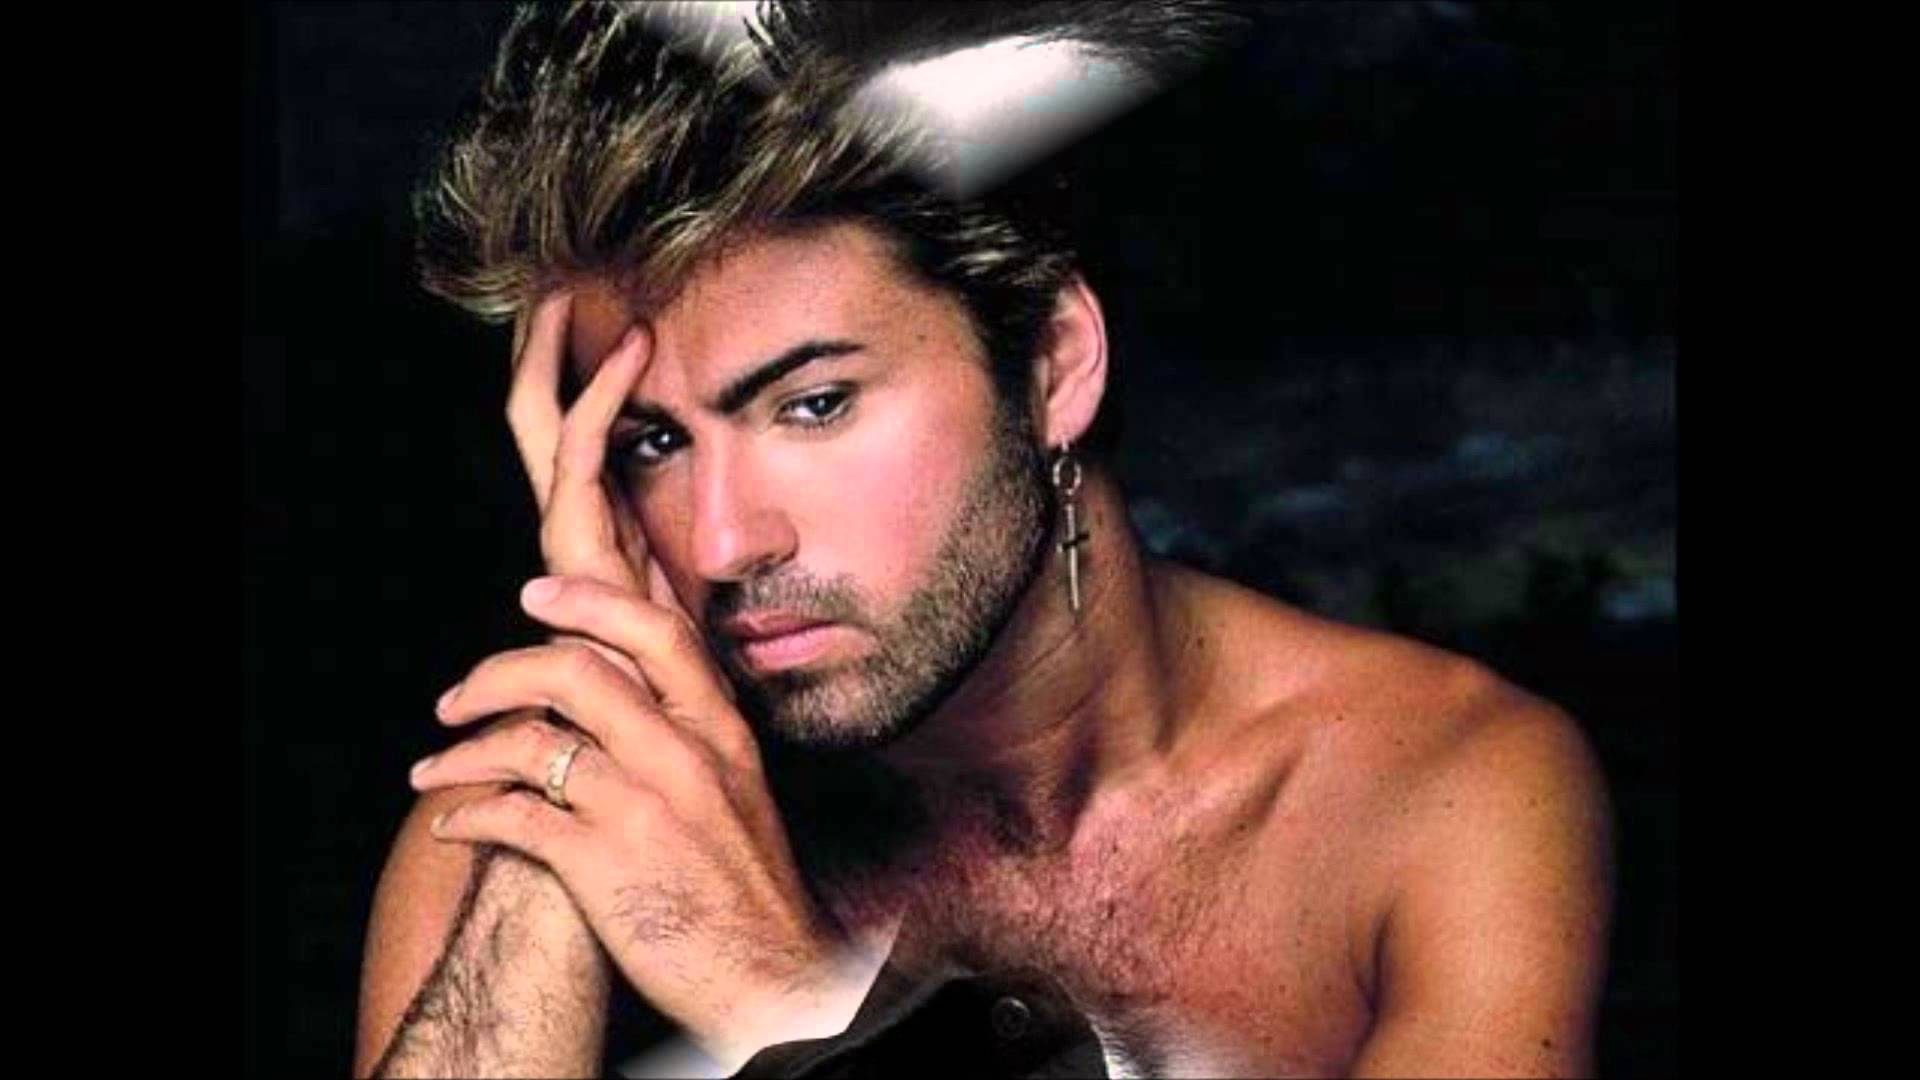 George Michael Screensavers